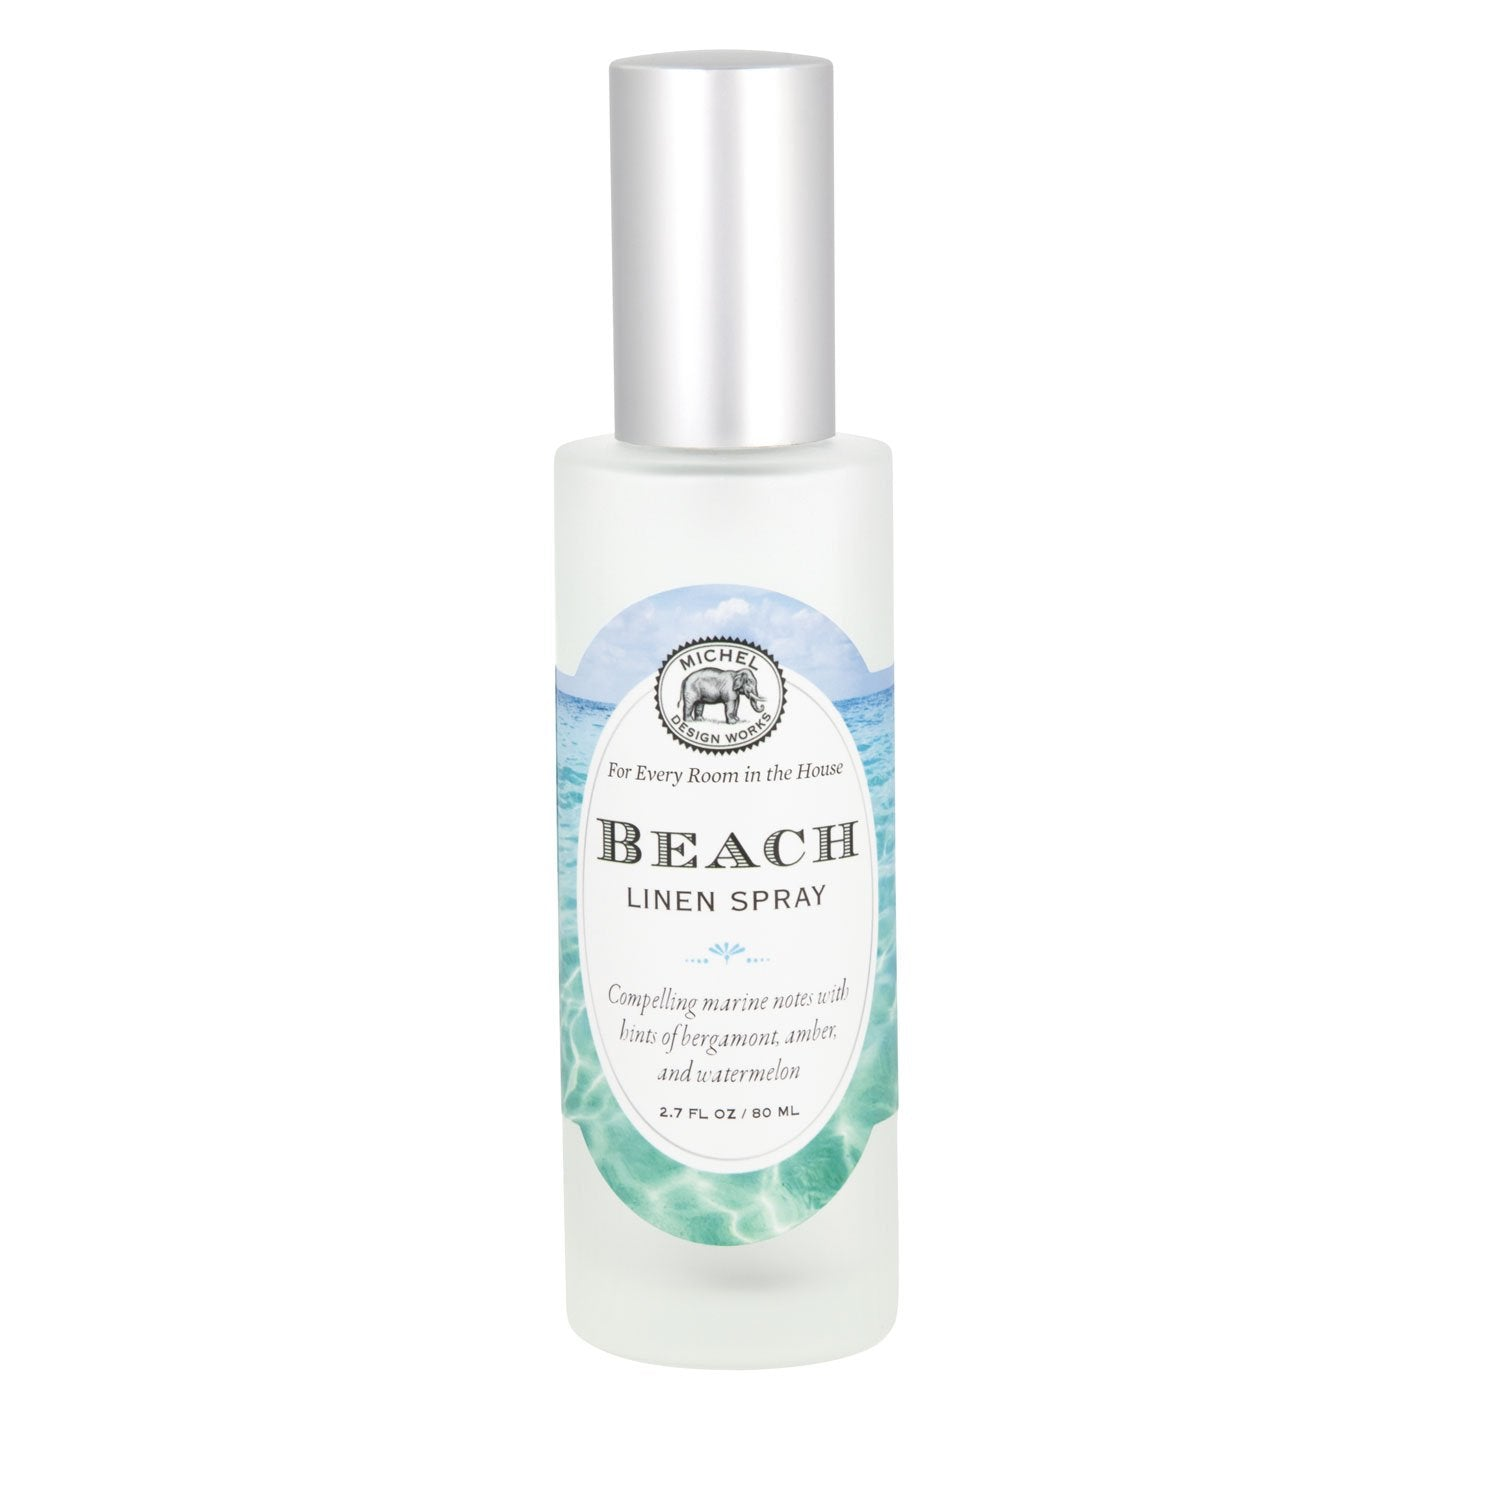 Beach Linen Spray